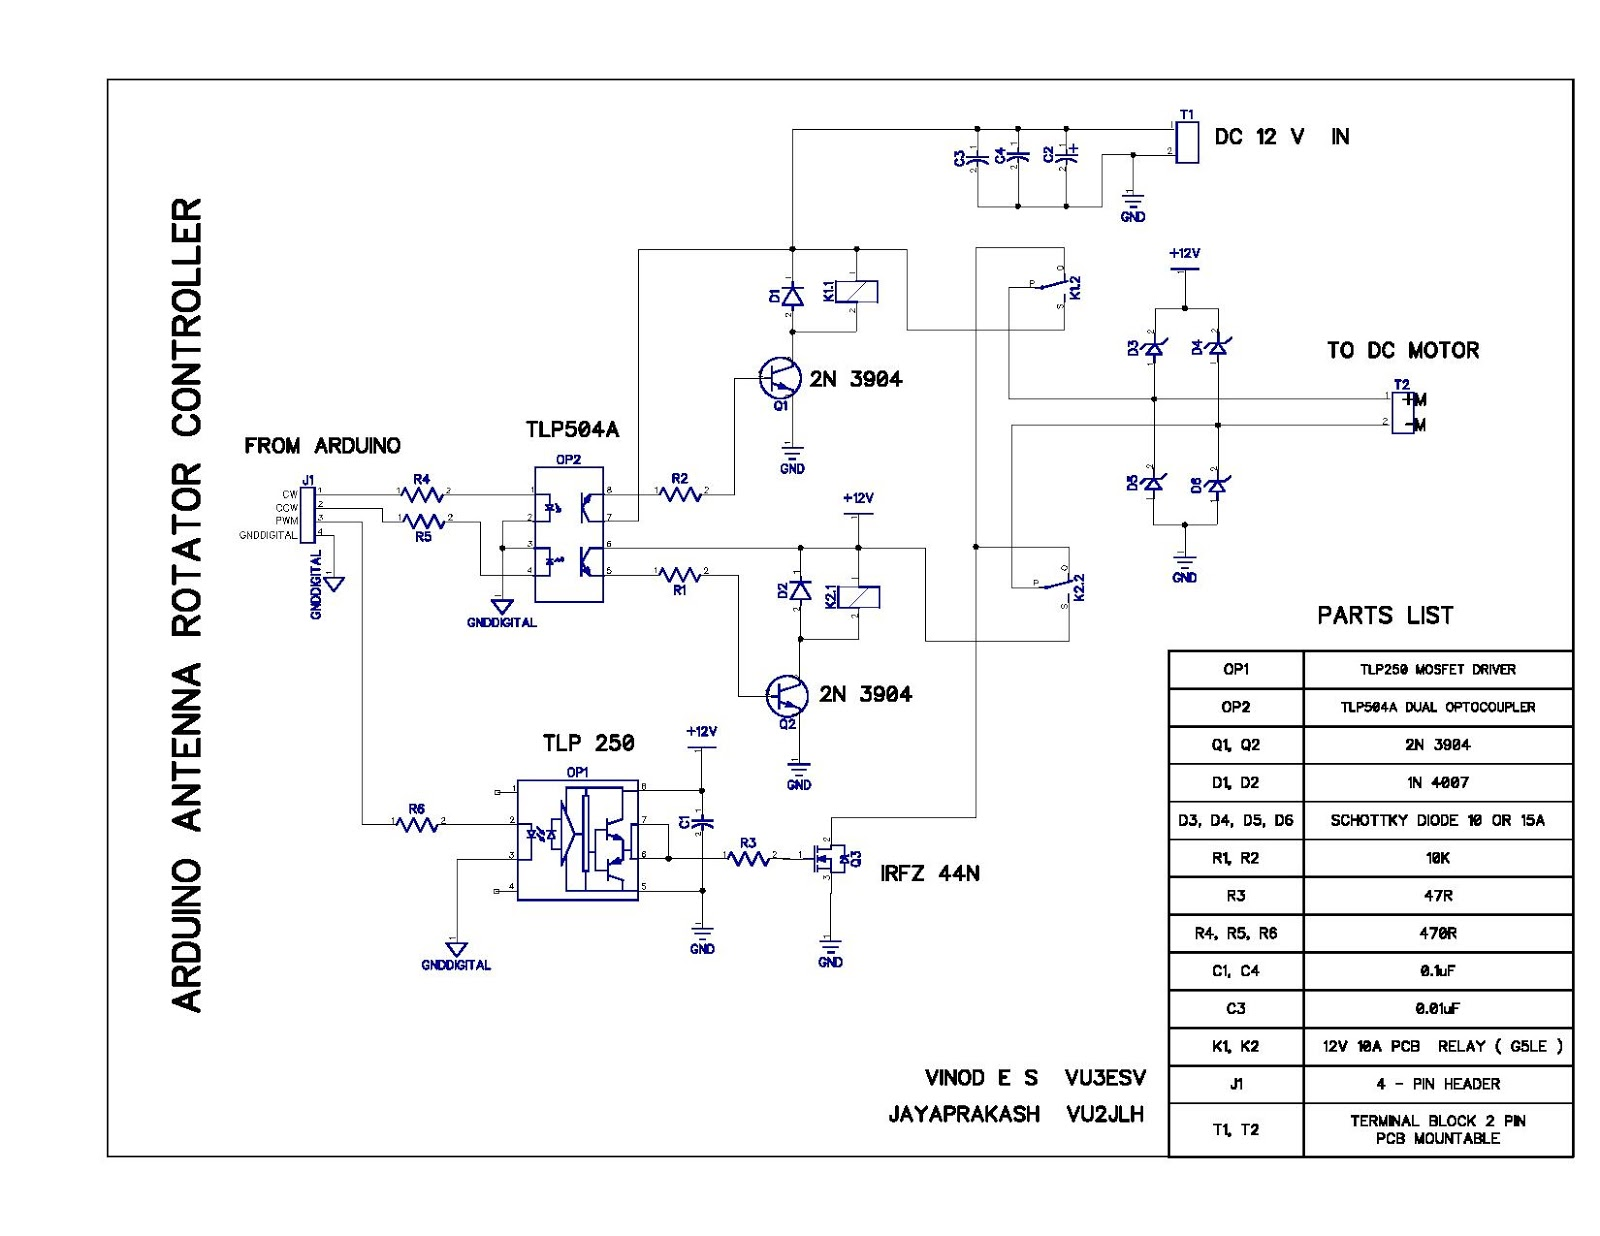 Antenna%2BRotator%2BController page 001 100nf arduino mega2560 based antenna rotator controller antenna rotor wiring diagram at n-0.co